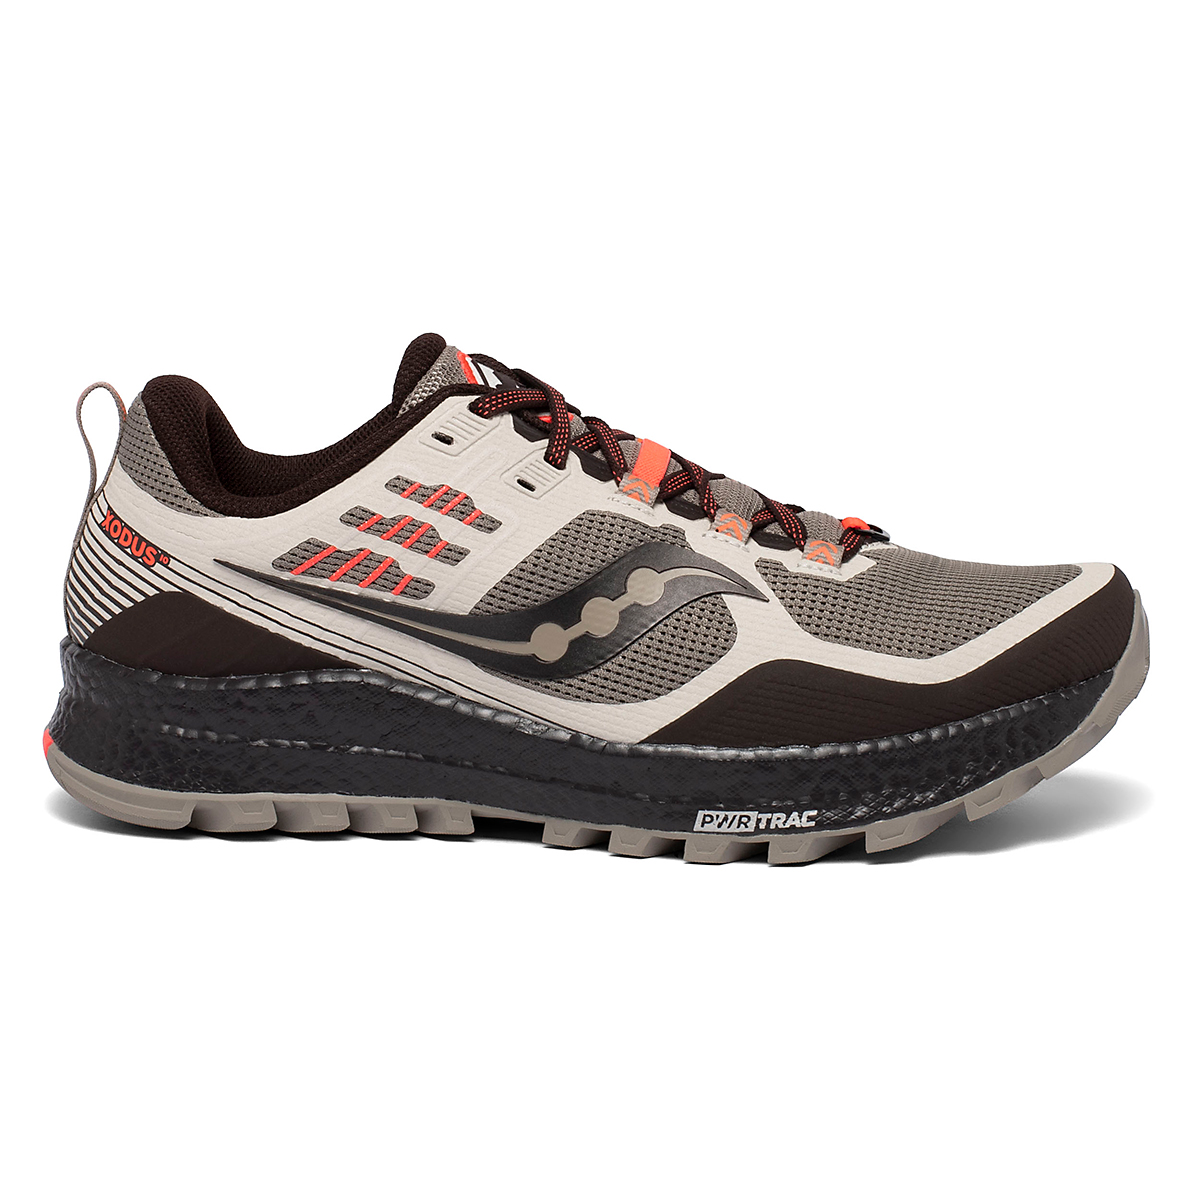 Men's Saucony Xodus 10 Trail Running Shoe - Color: Moonrock/Coffee - Size: 7 - Width: Regular, Moonrock/Coffee, large, image 1